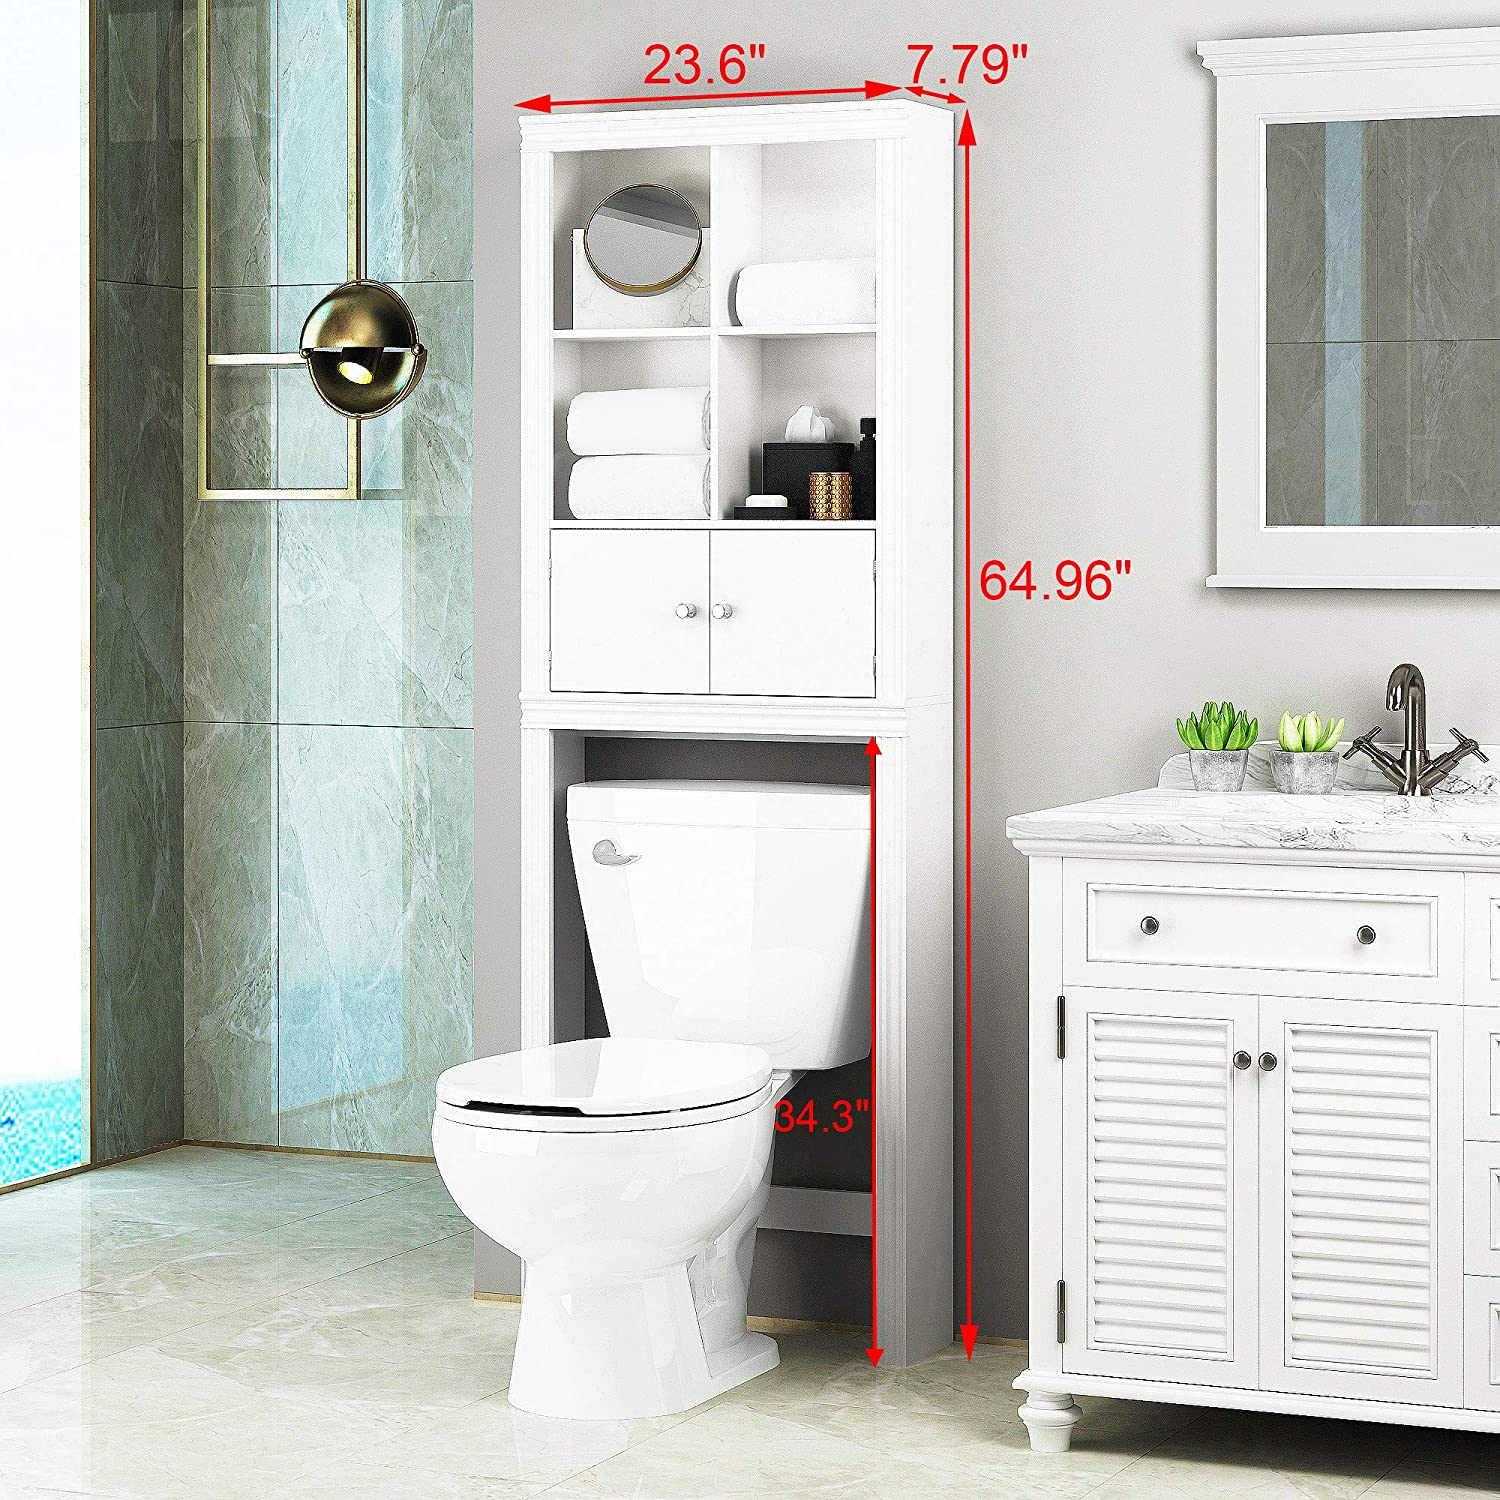 Incredible Spirich Home Bathroom Shelf Over The Toilet Bathroom Cabinet Organizer Over Toilet Space Saver Cabinet Storage White Download Free Architecture Designs Lectubocepmadebymaigaardcom